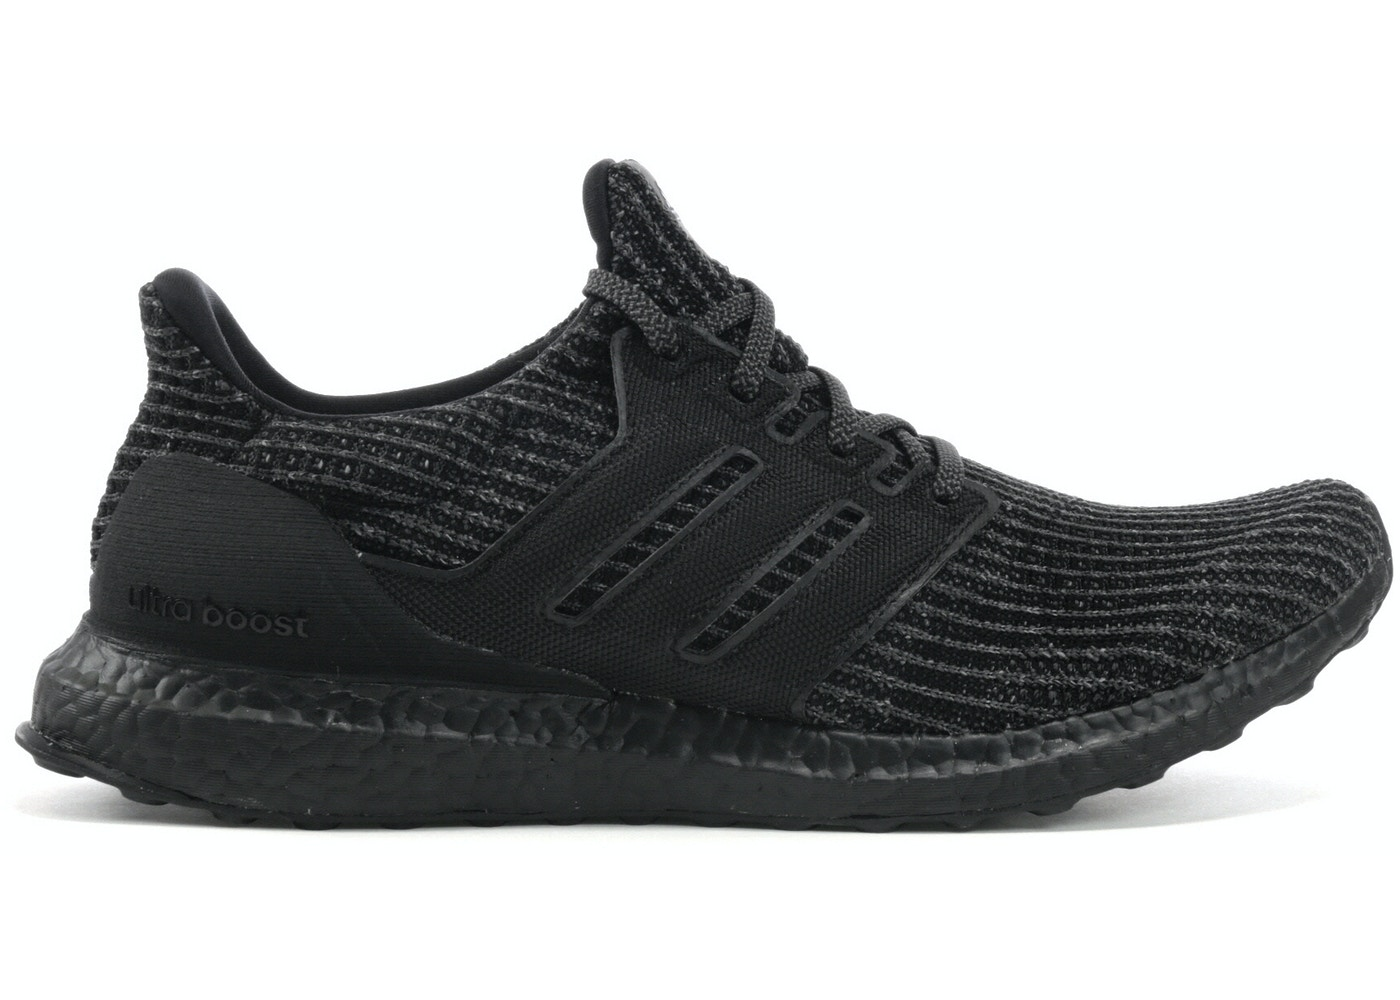 cafd6ac707587 adidas Ultra Boost 4.0 Triple Black - BB6171